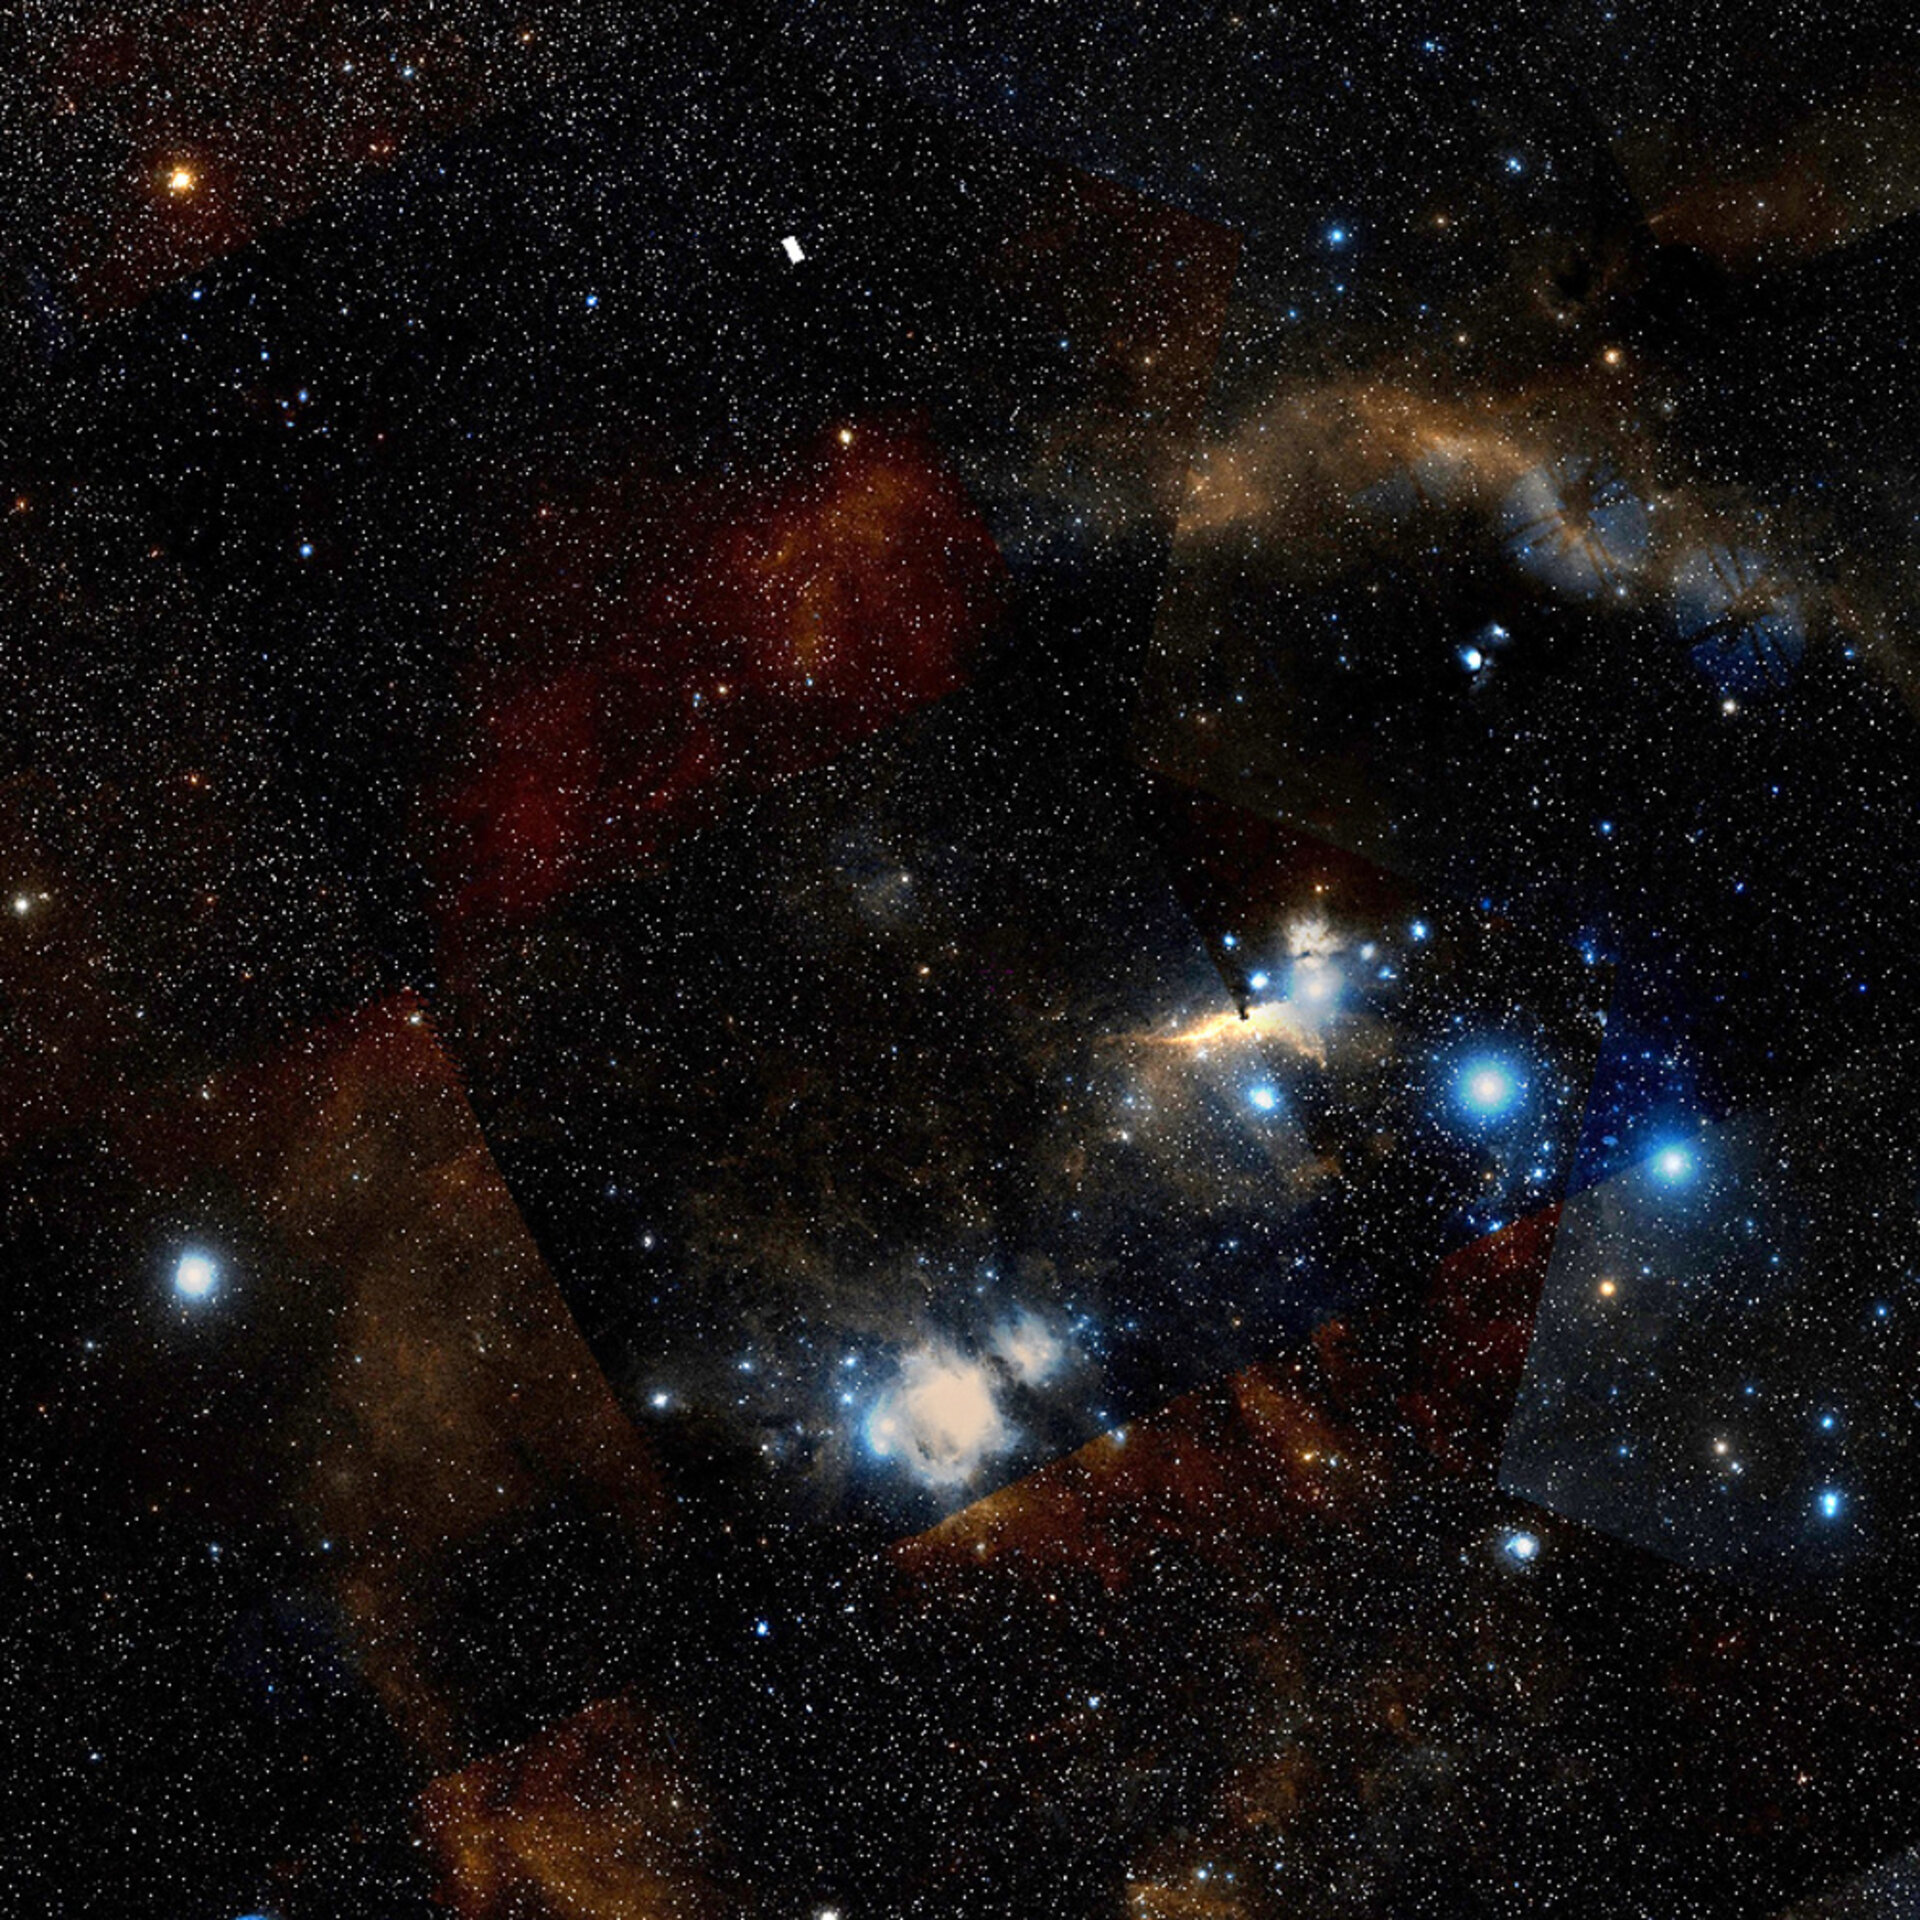 Molecular oxygen has been found in the Orion region